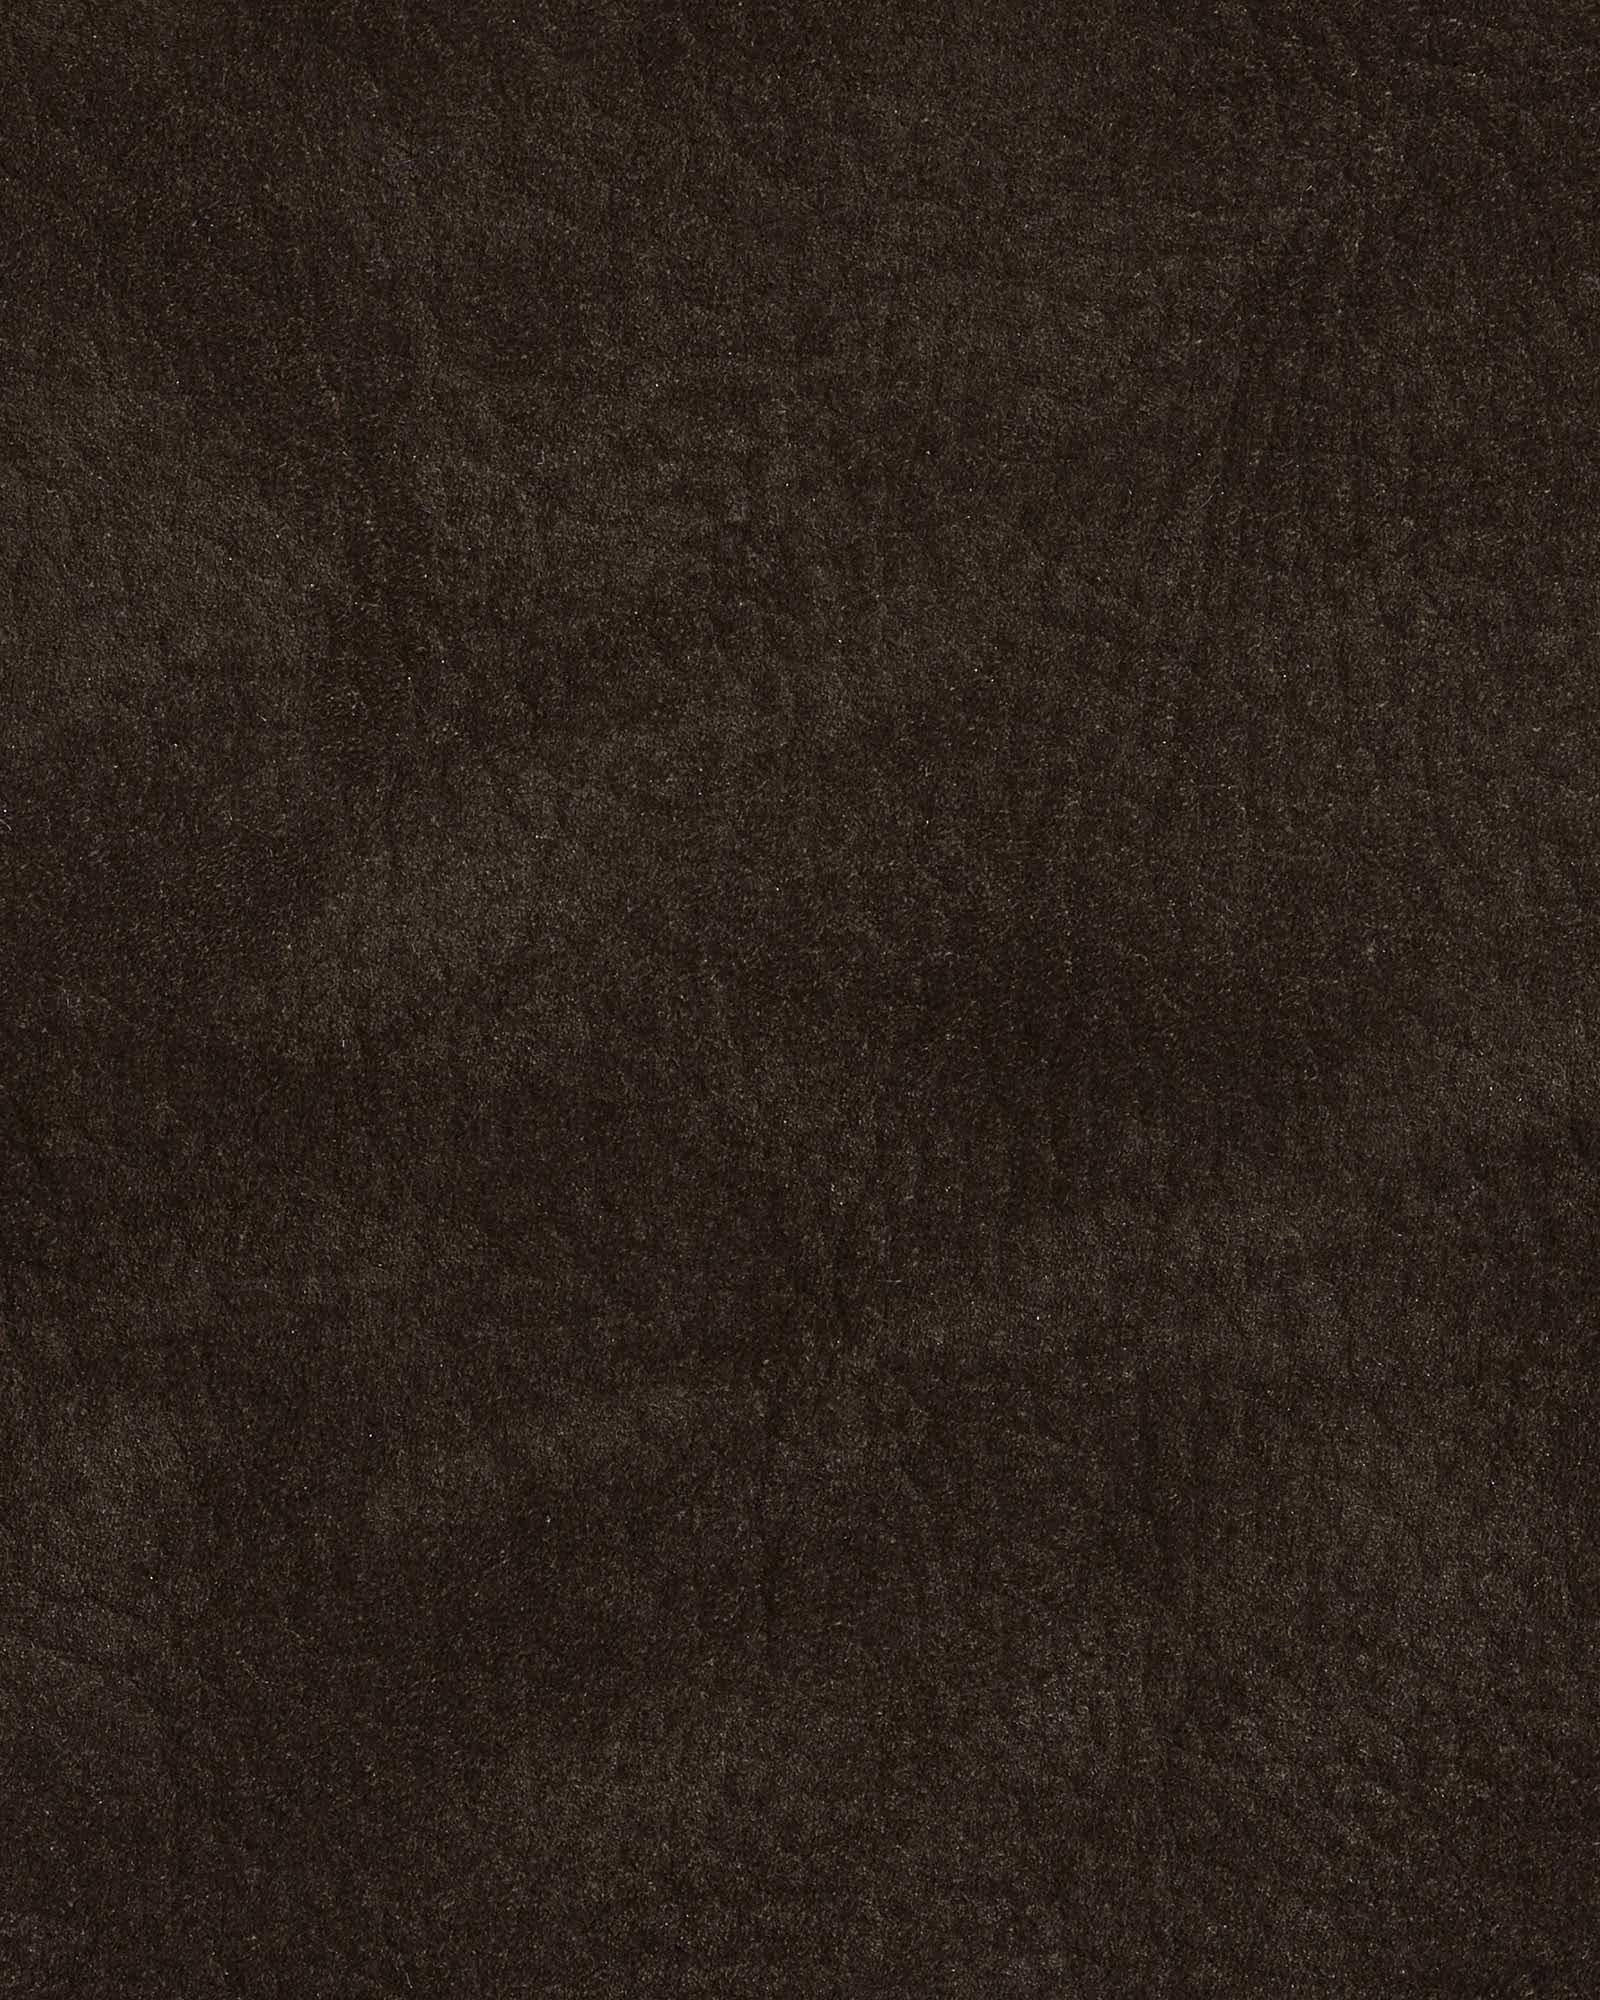 Cottswald Leather - Espresso,